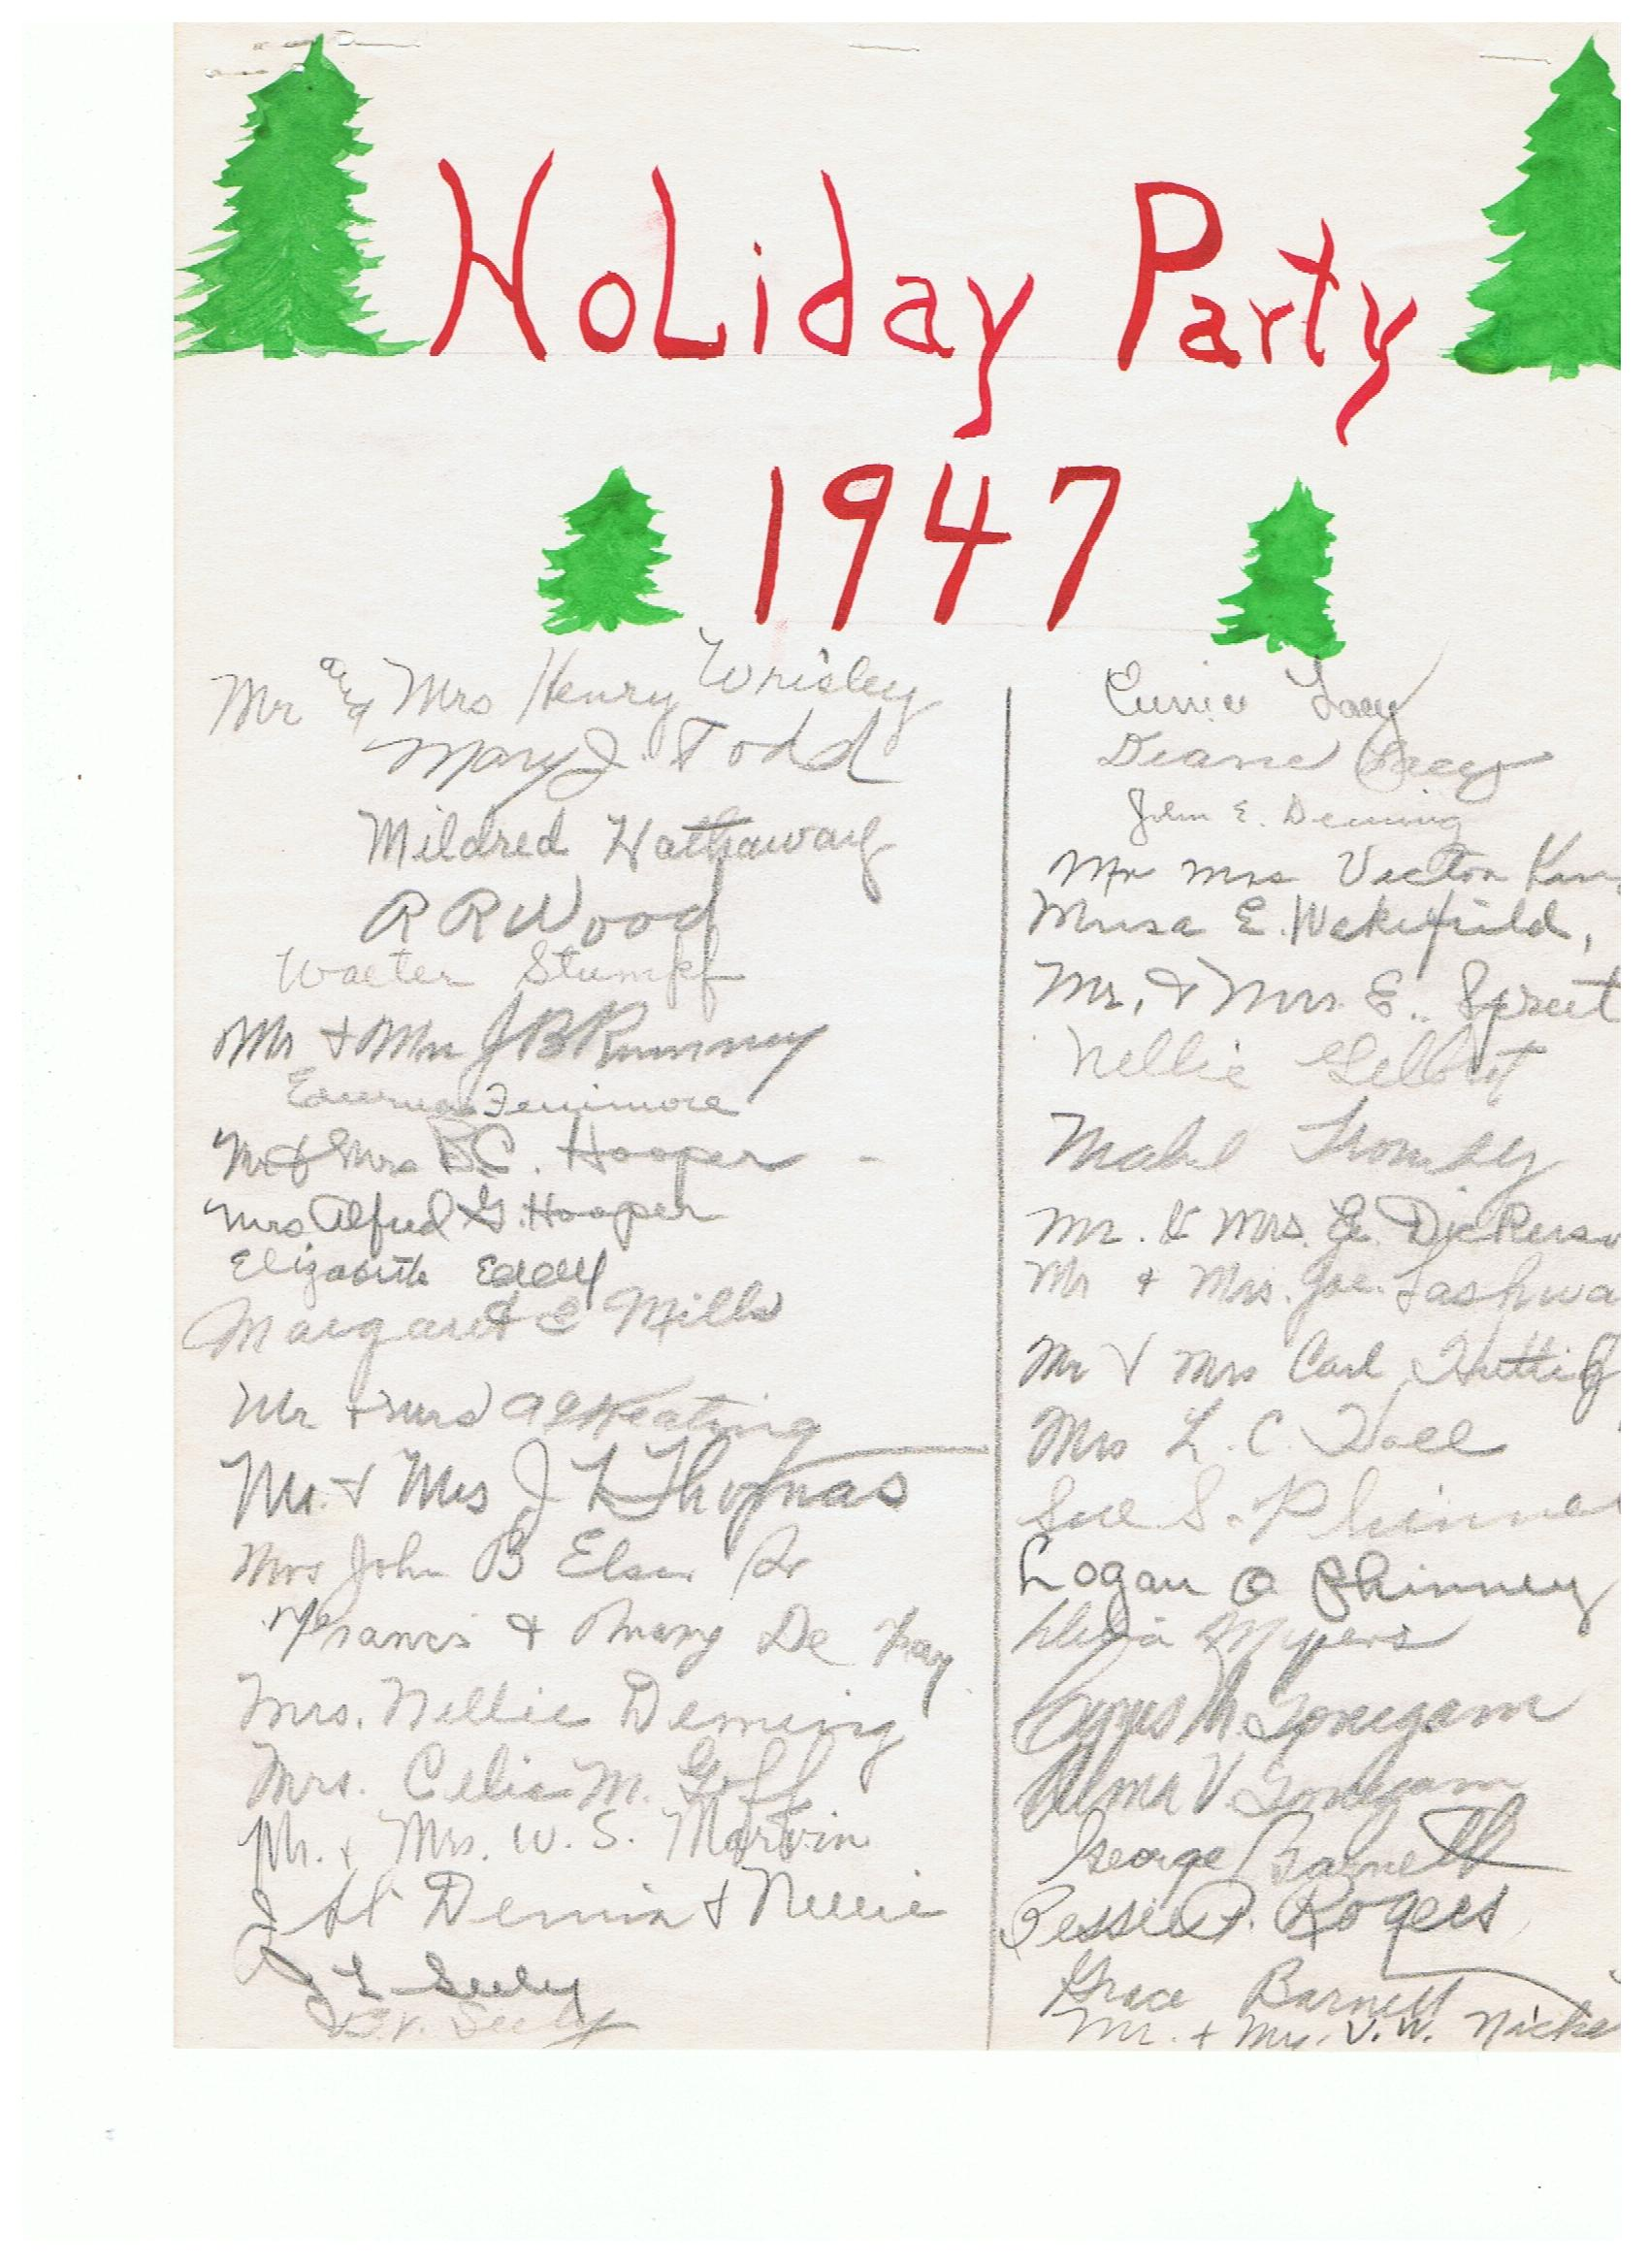 Holiday Party 1947